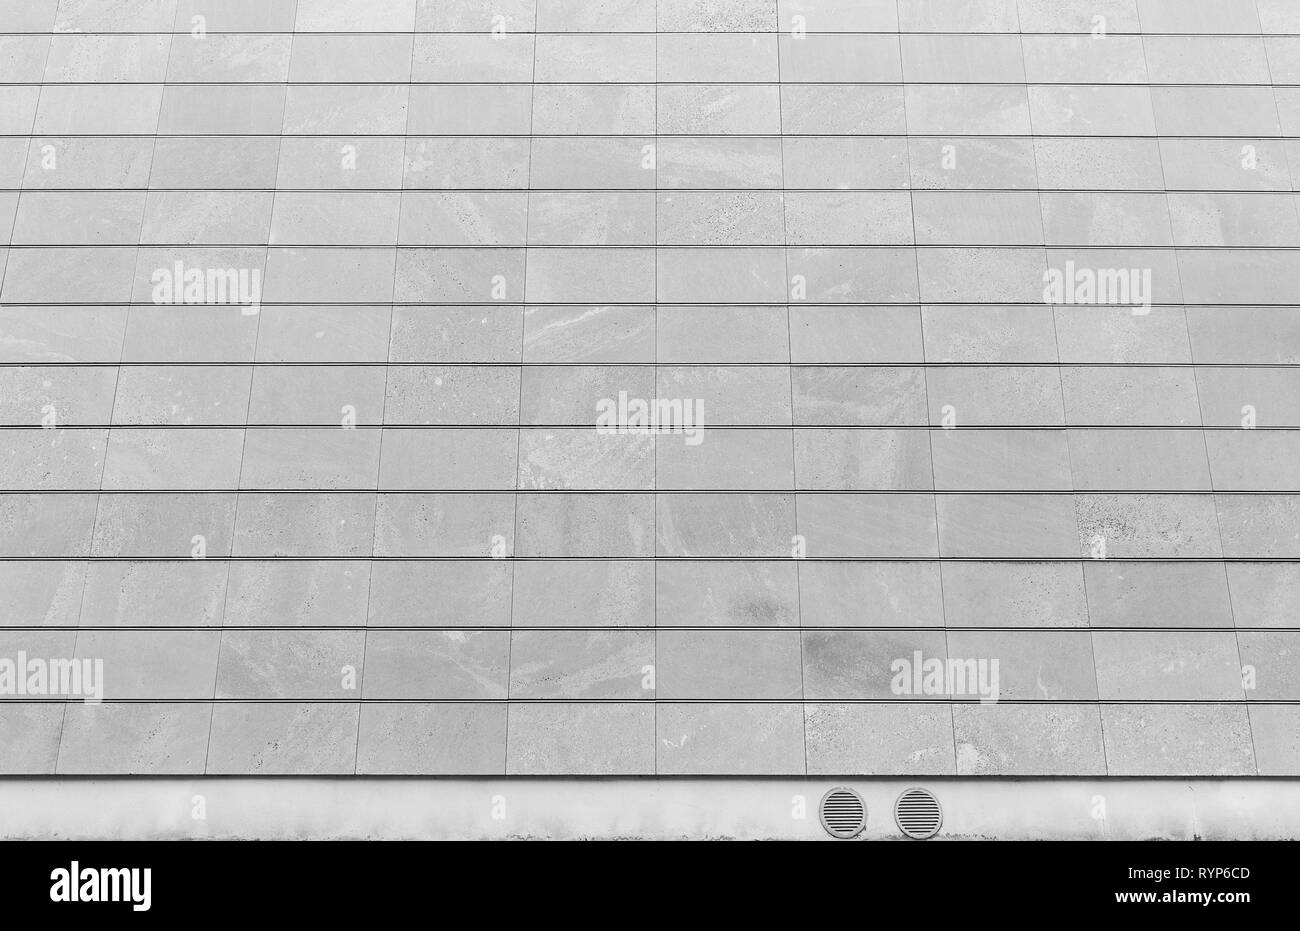 Full frame background of a new, modern and clean stone wall or building exterior in black and white. Stock Photo